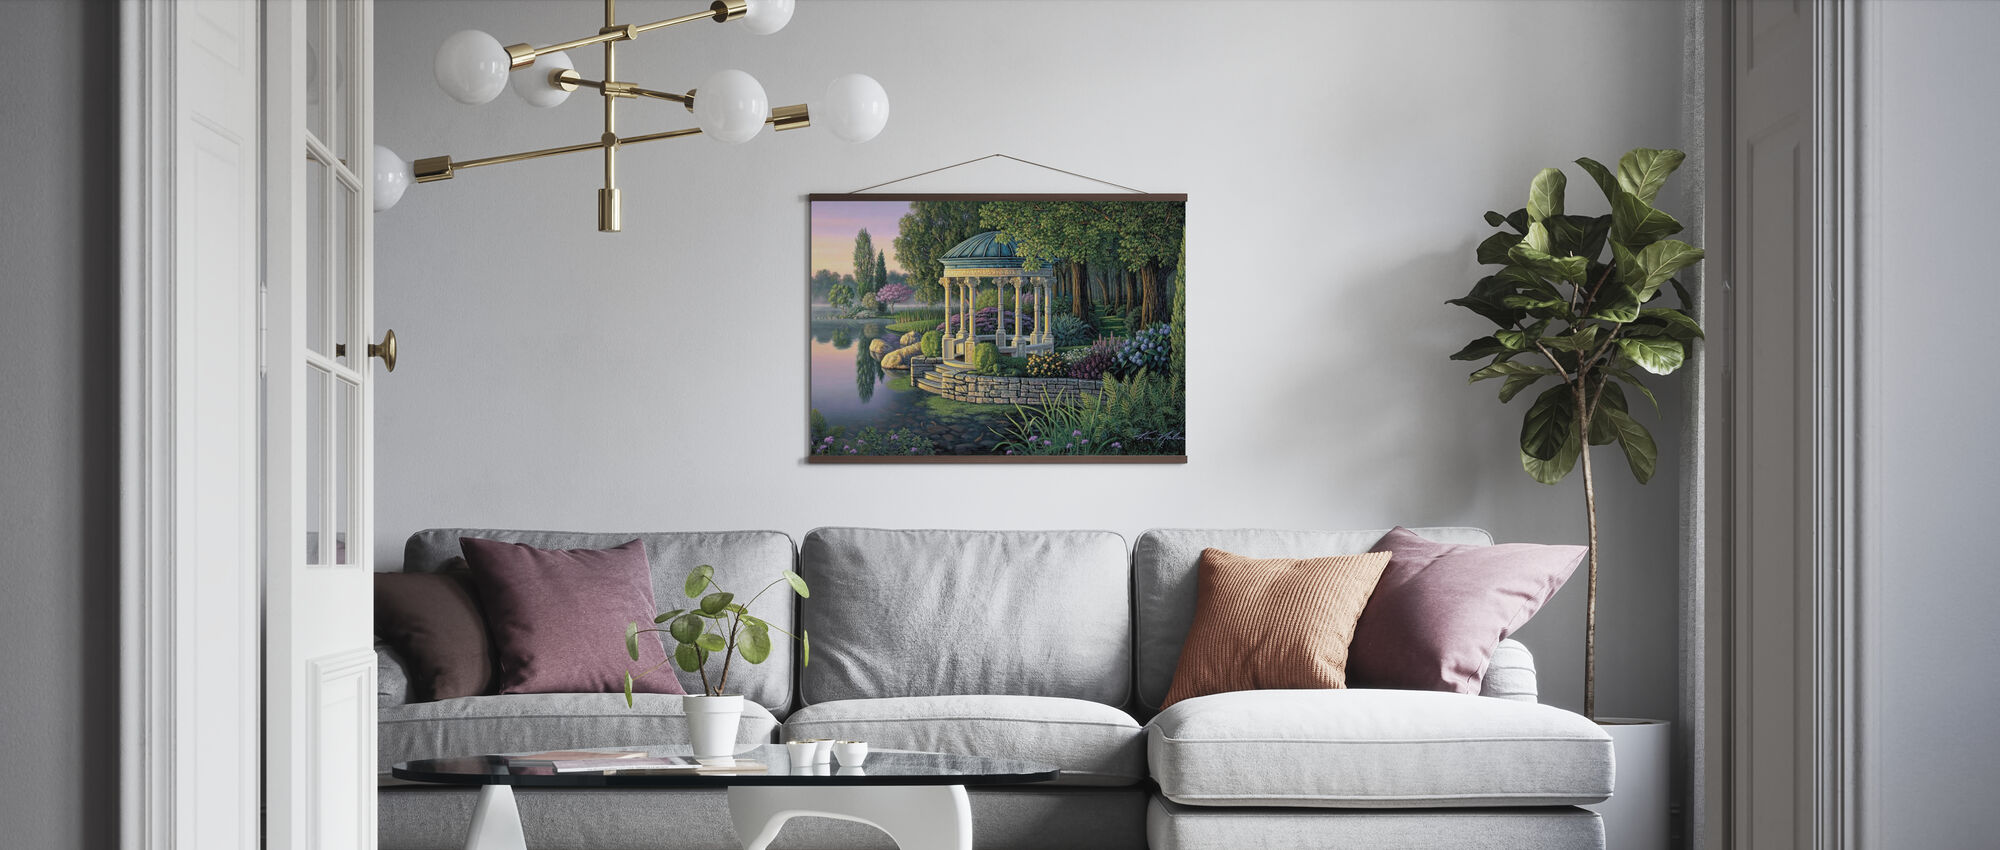 Geheime Tuin - Poster - Woonkamer